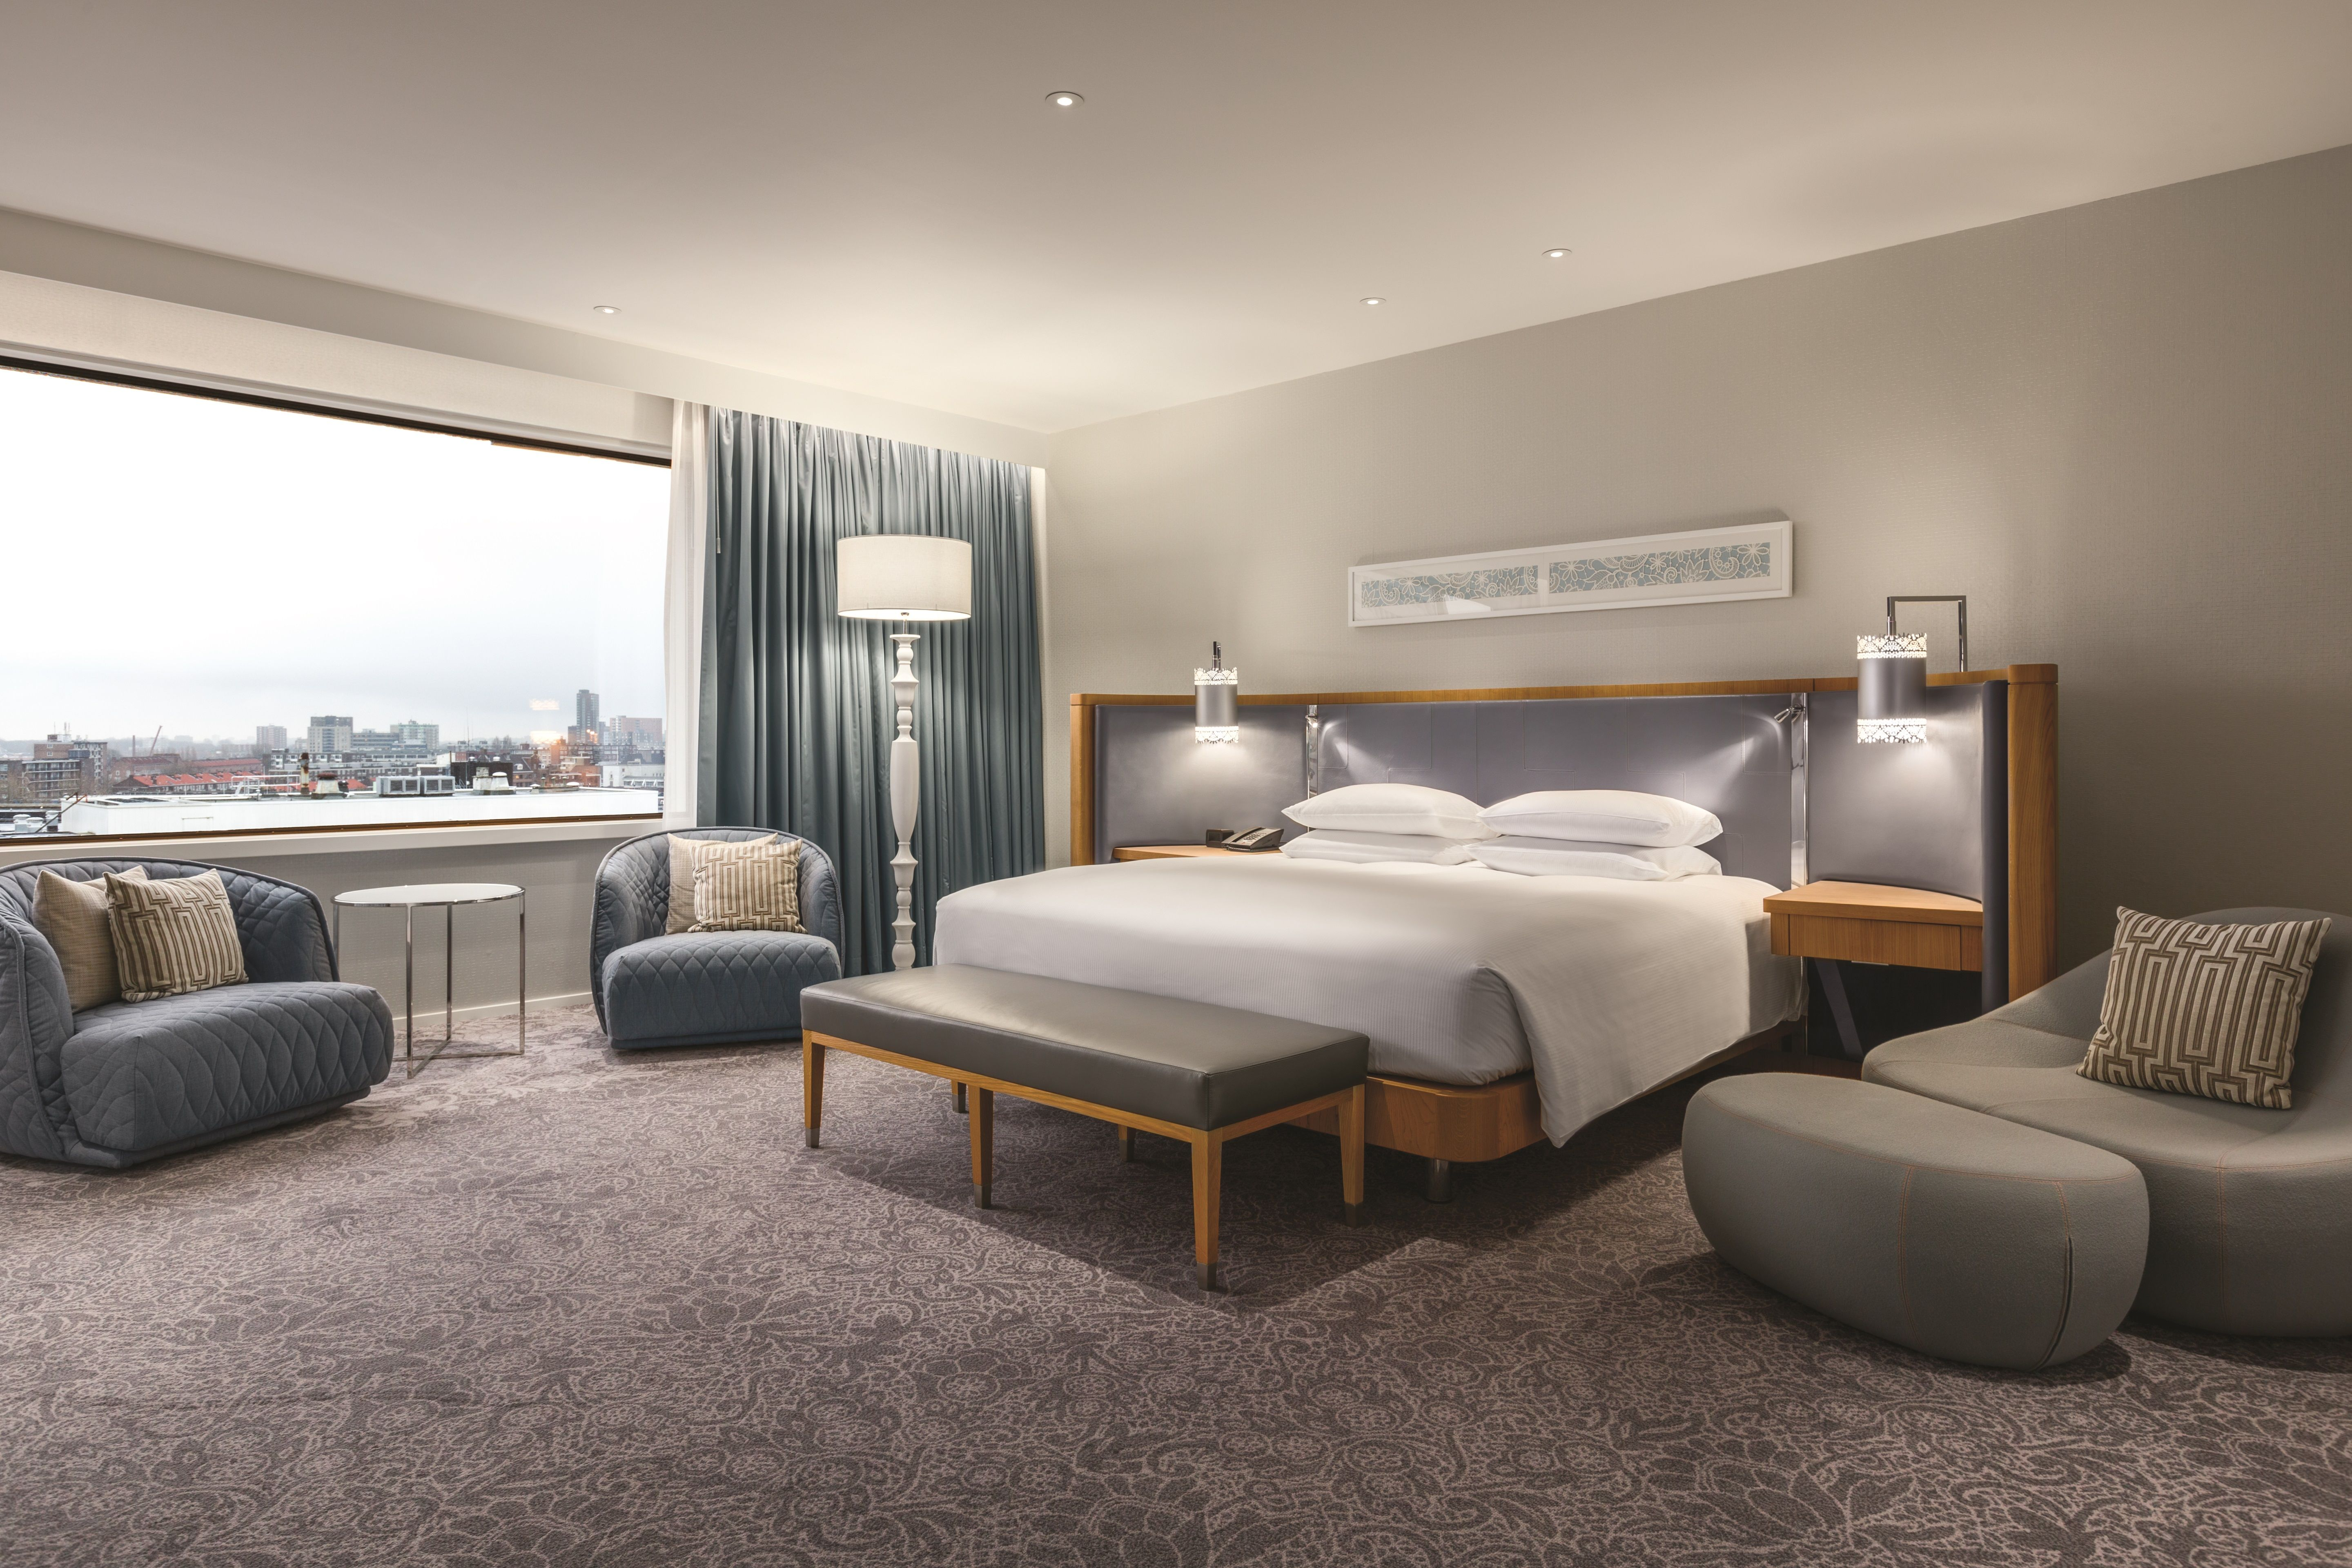 Presidential Suite Photo By Jfw Studio Photograpy Rotterdam Hotel New Room Hotel